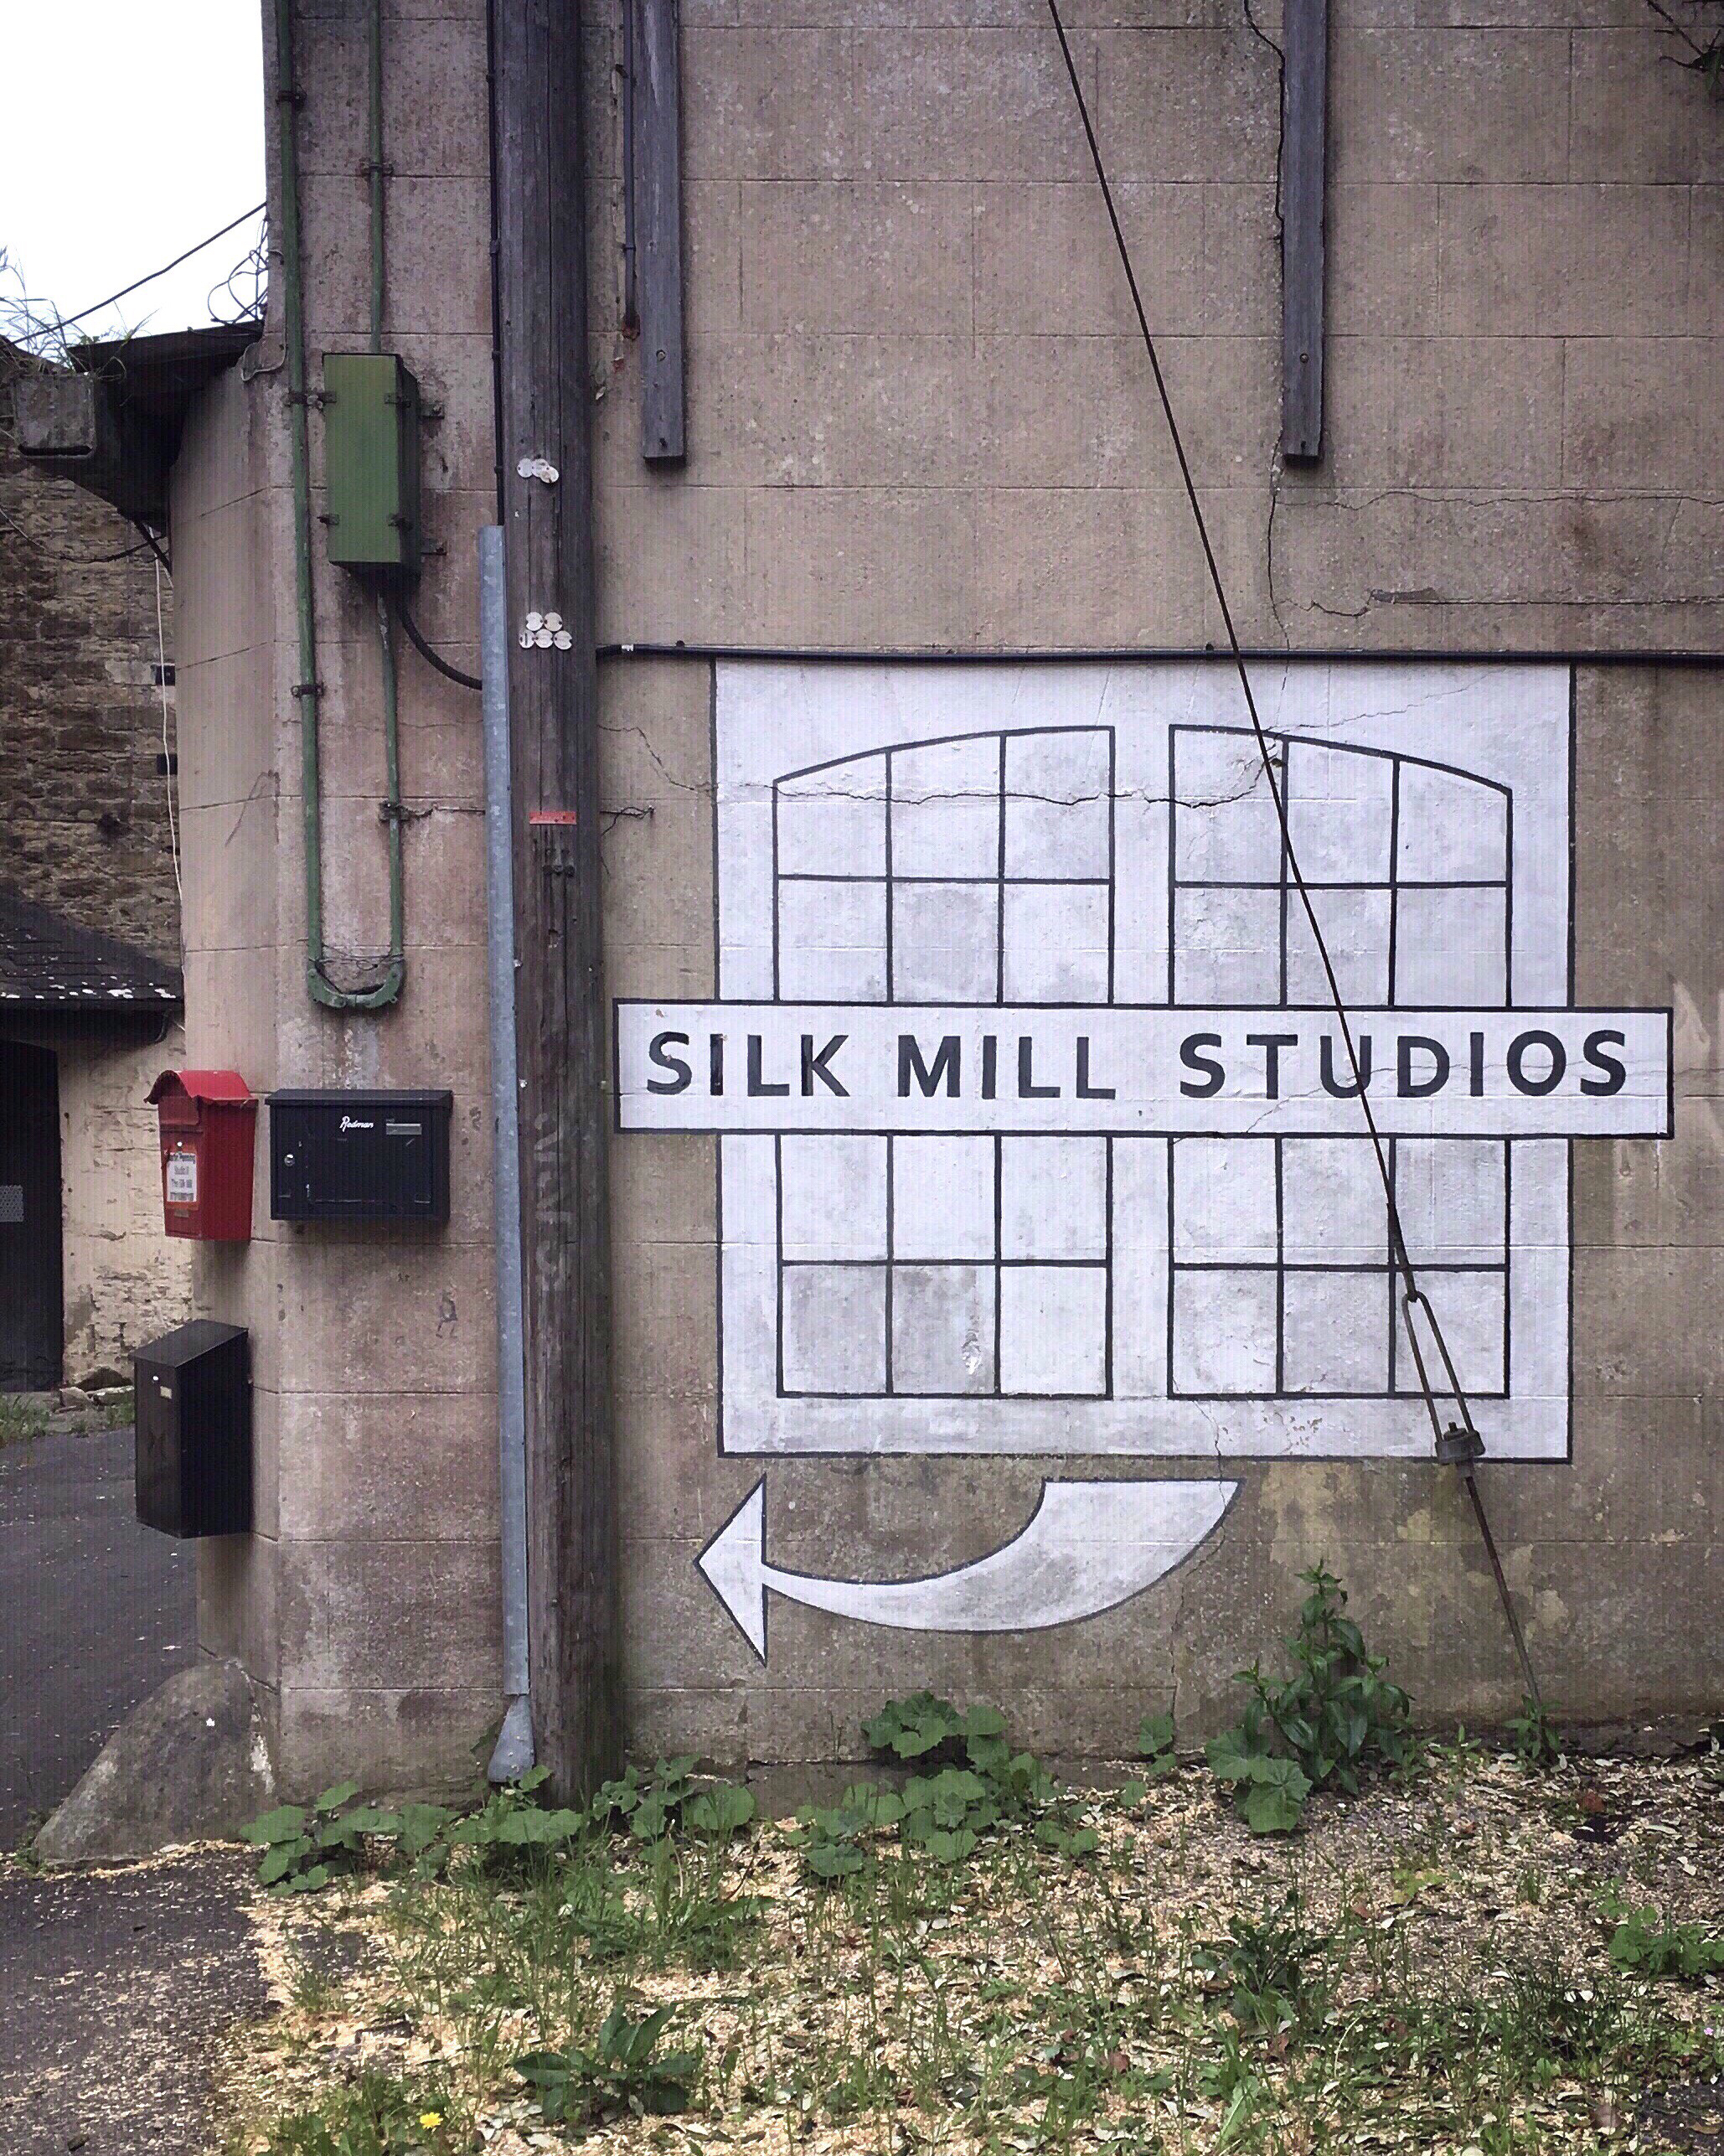 Silk Mill Studios, Froome, © Sarah Willard Couture 2018